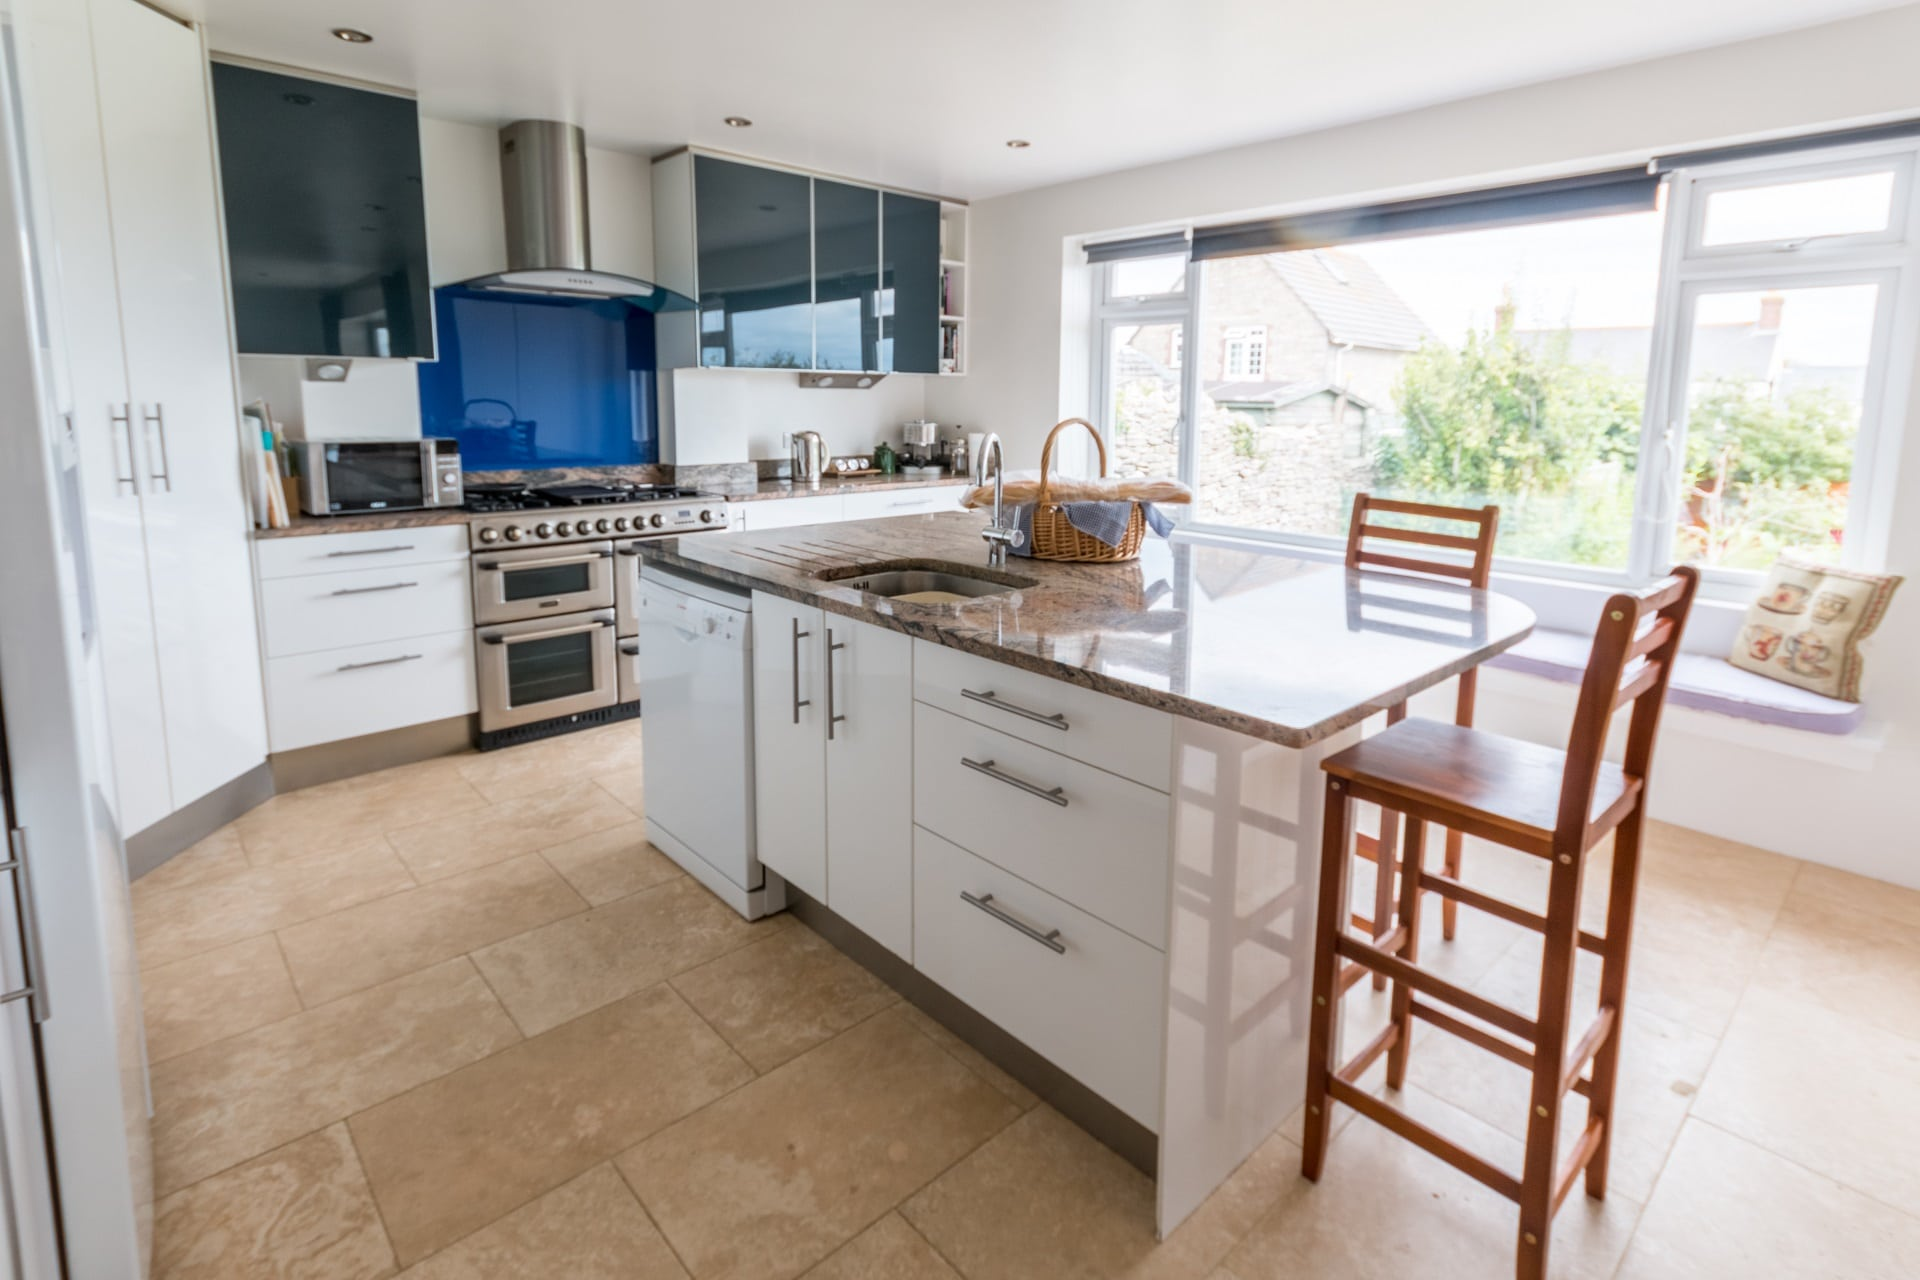 luxury dorset holiday cottage kitchen